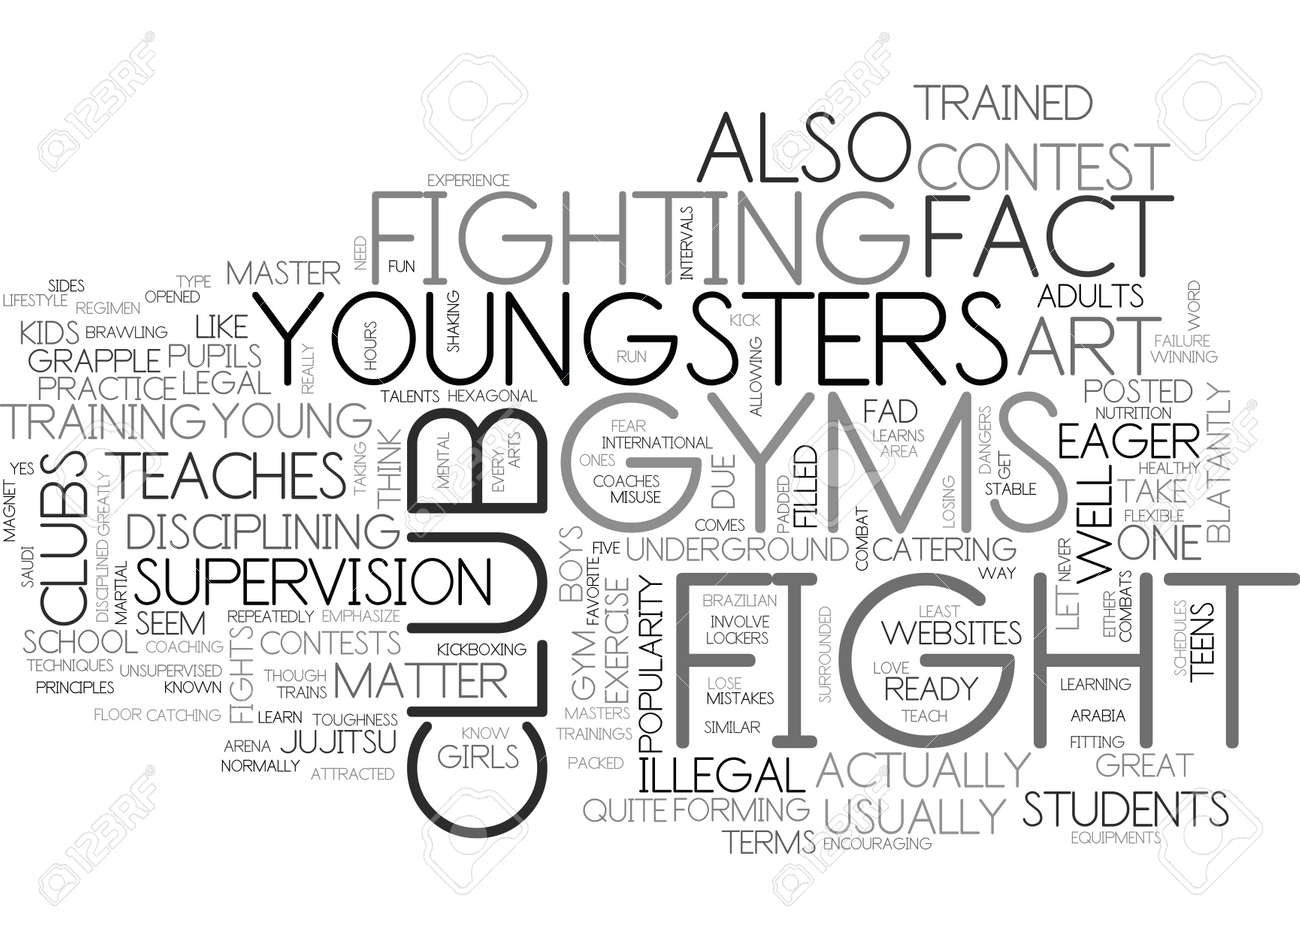 WHAT YOU NEED TO KNOW ABOUT FIGHT CLUB GYMS FOR KIDS TEXT WORD